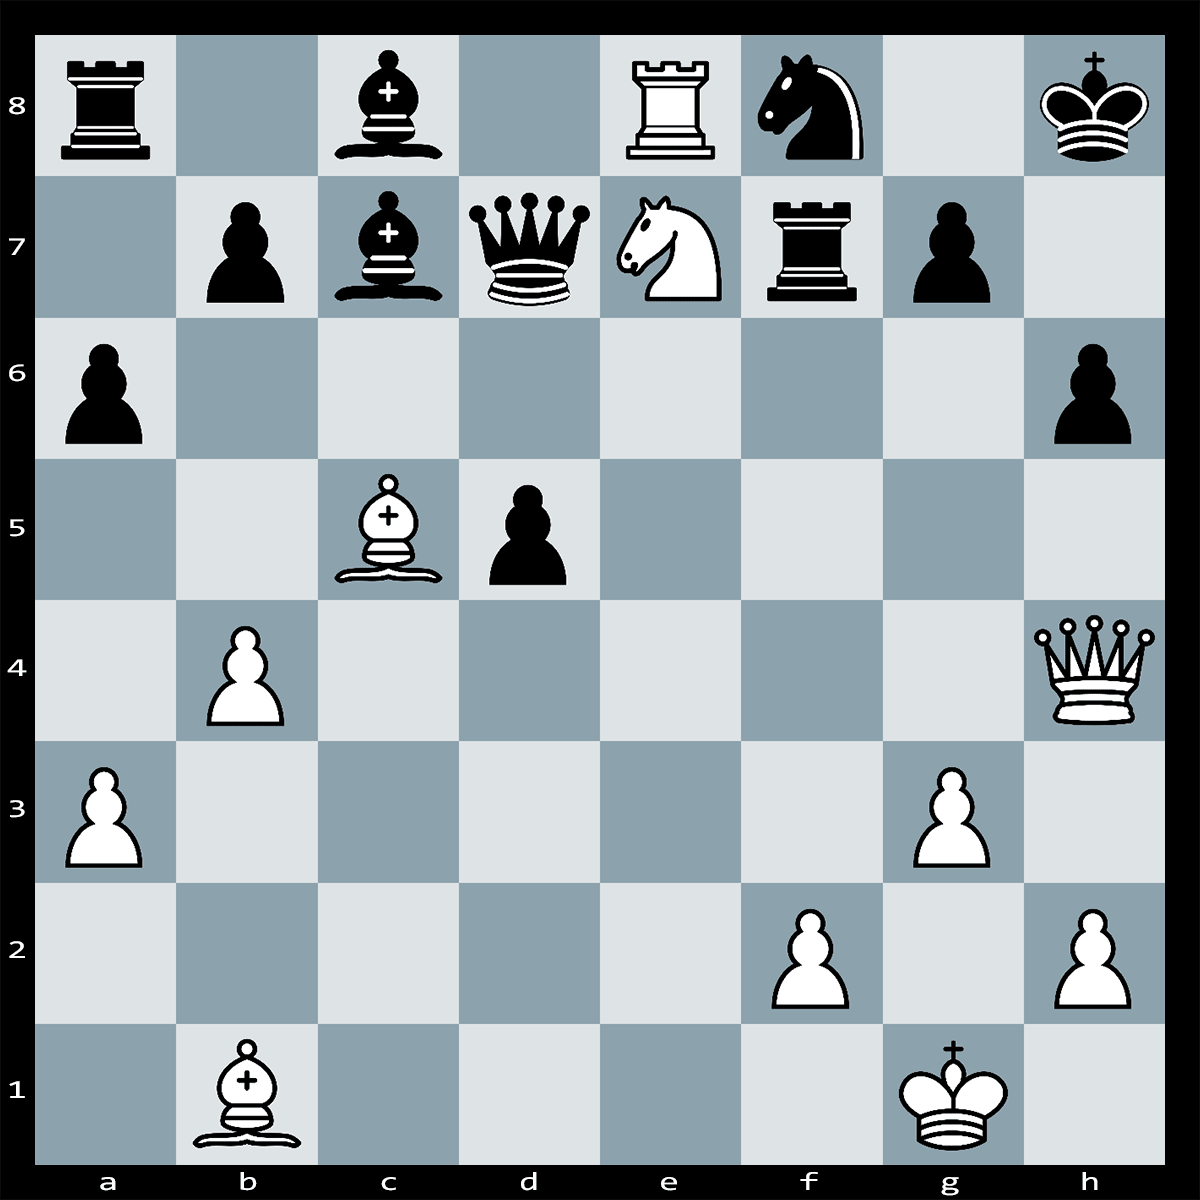 Mate in 4 Moves, White to Play - Chess Puzzle #76